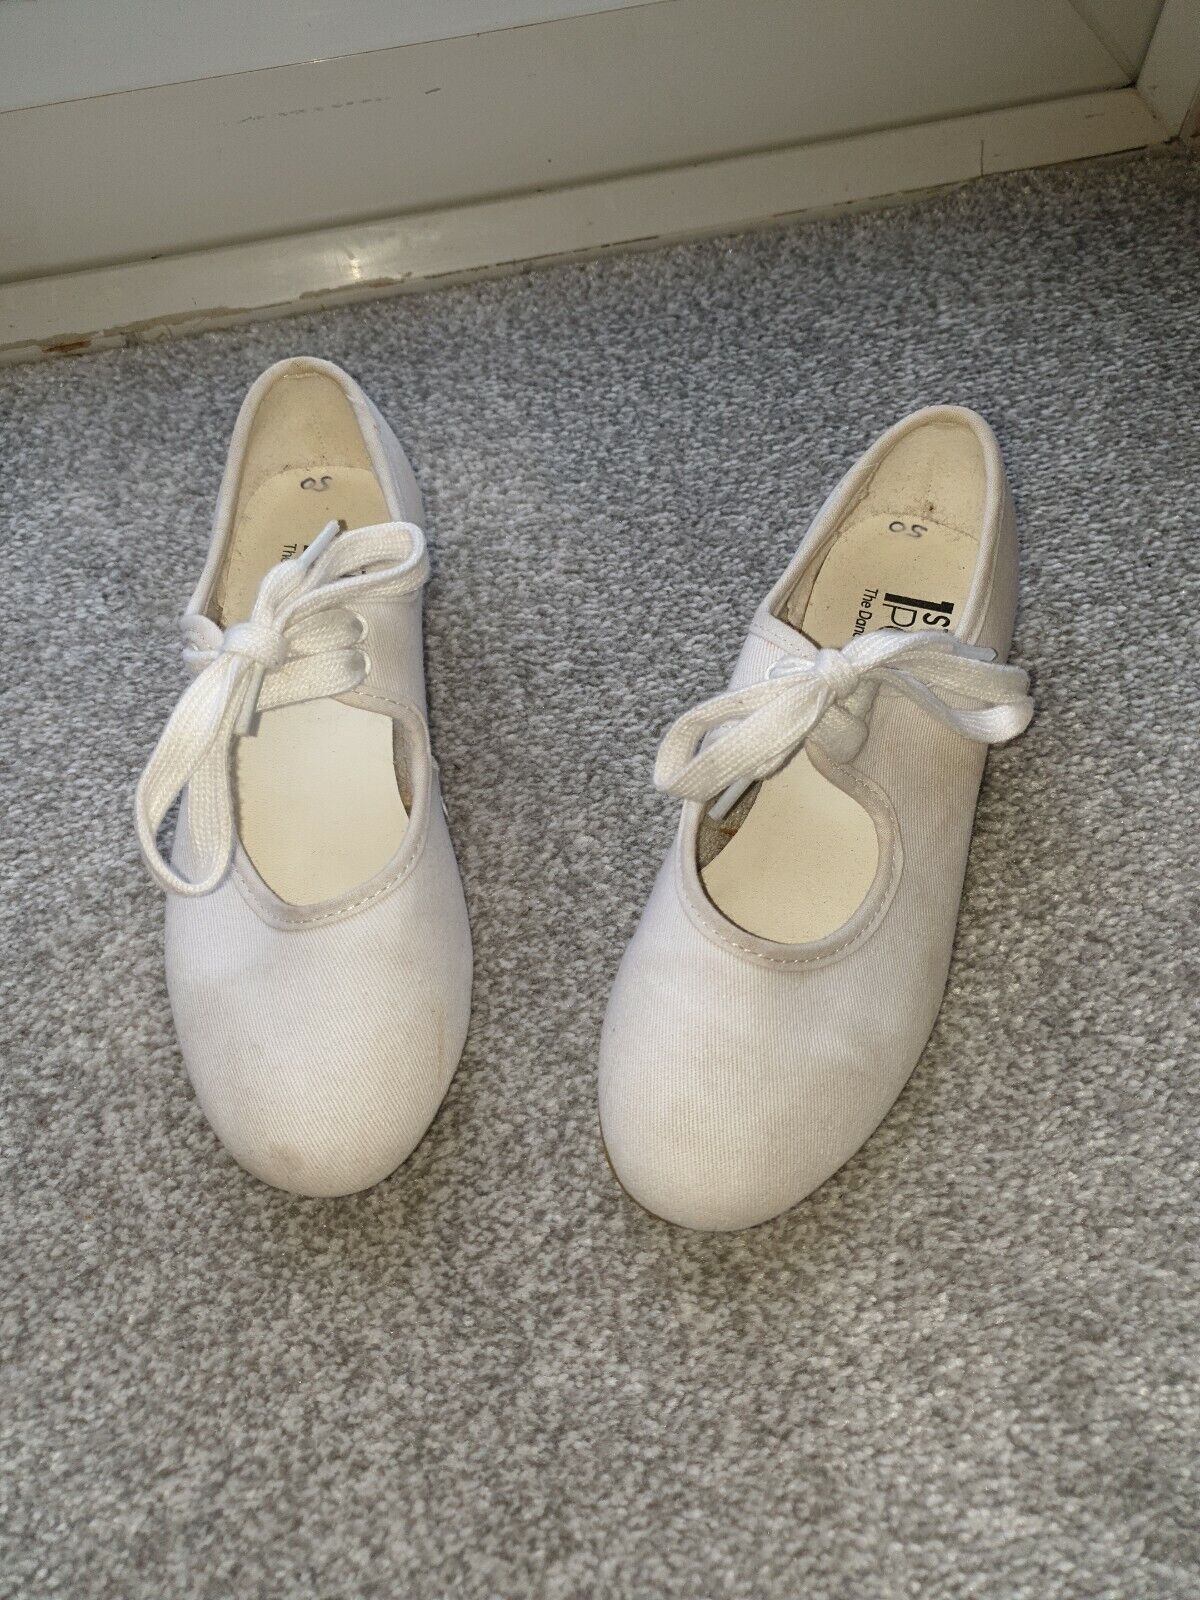 Girls ballet shoes size 13